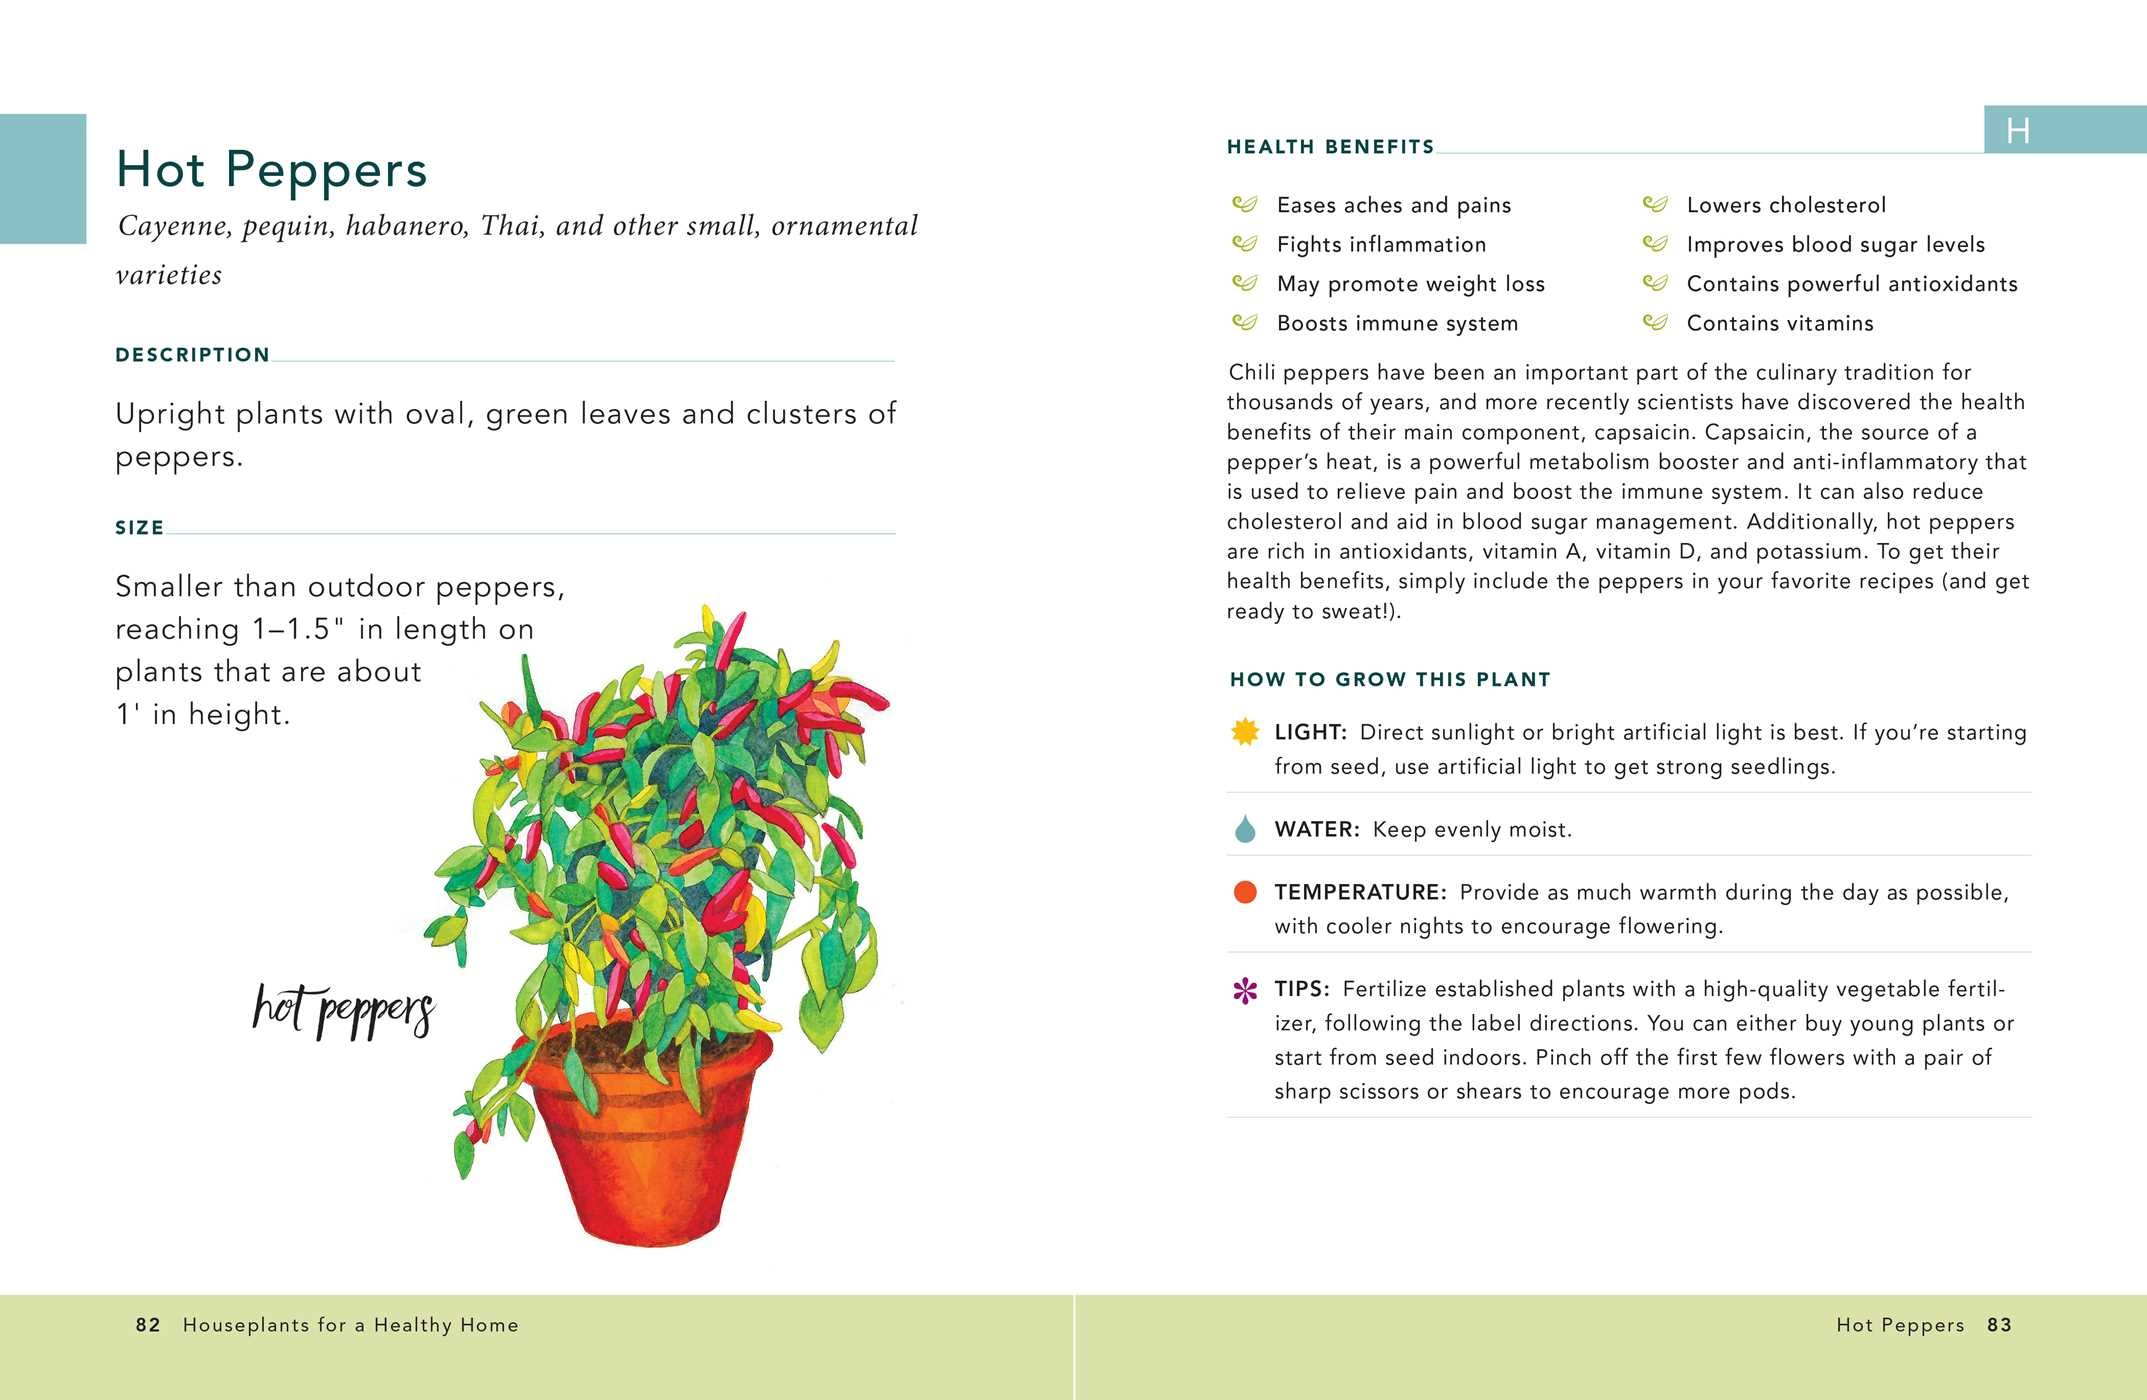 Houseplants for a healthy home 9781507207291.in01